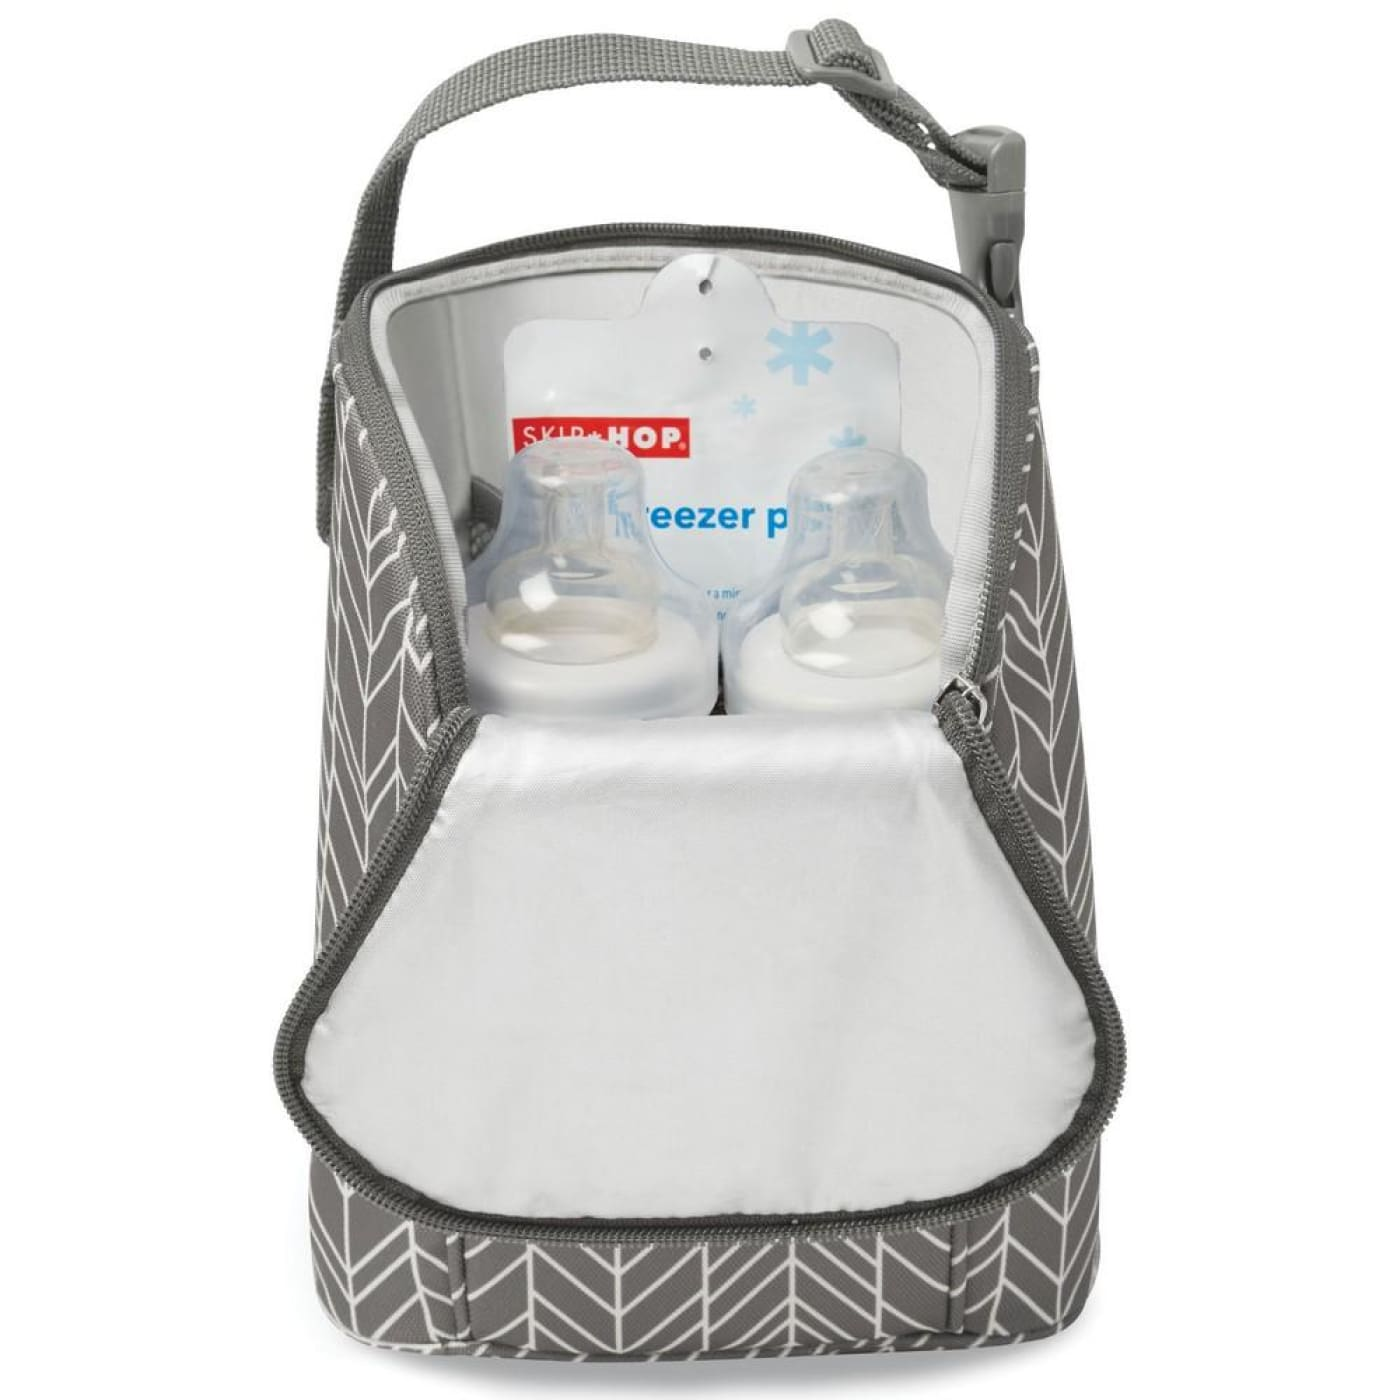 Skip Hop Double Bottle Bag - Grey Feather - ON THE GO - NAPPY BAGS/LUGGAGE